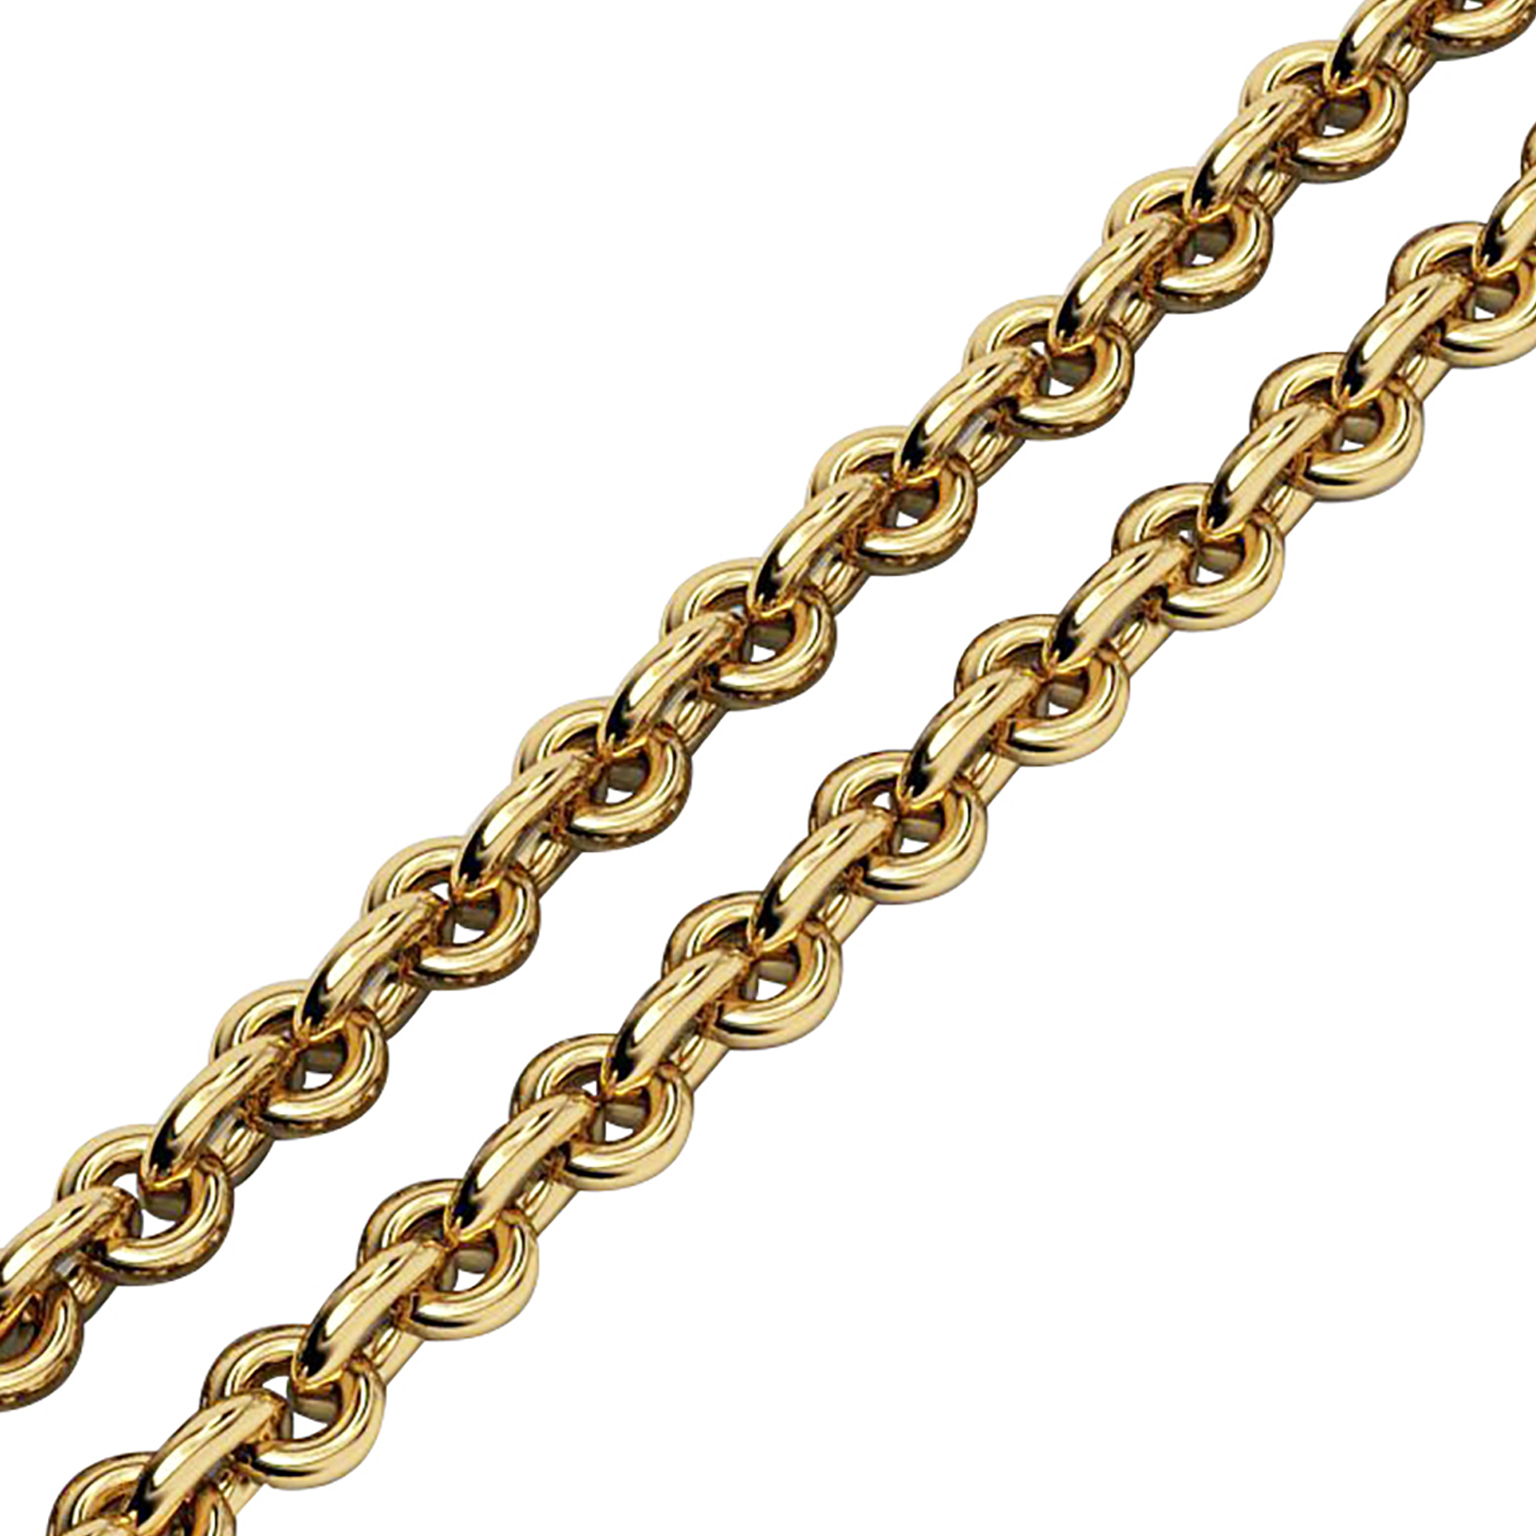 rollo-99 chain necklace, made of 18k yellow gold vermeil on 925 sterling silver / 40 cm – 15,75''